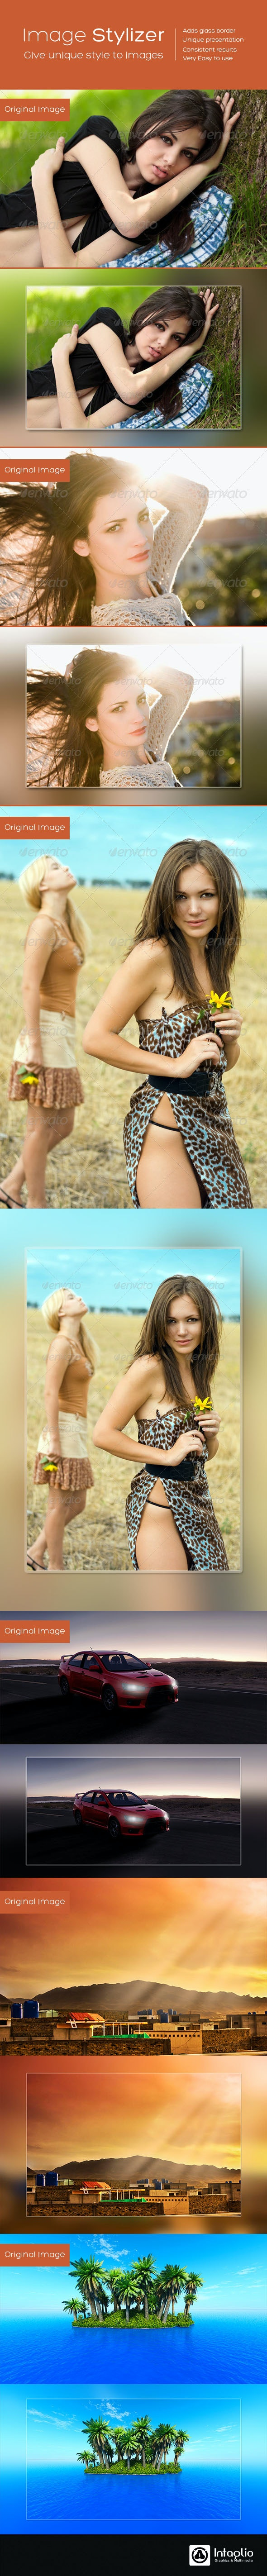 Image Stylizer - Photo Effects Actions